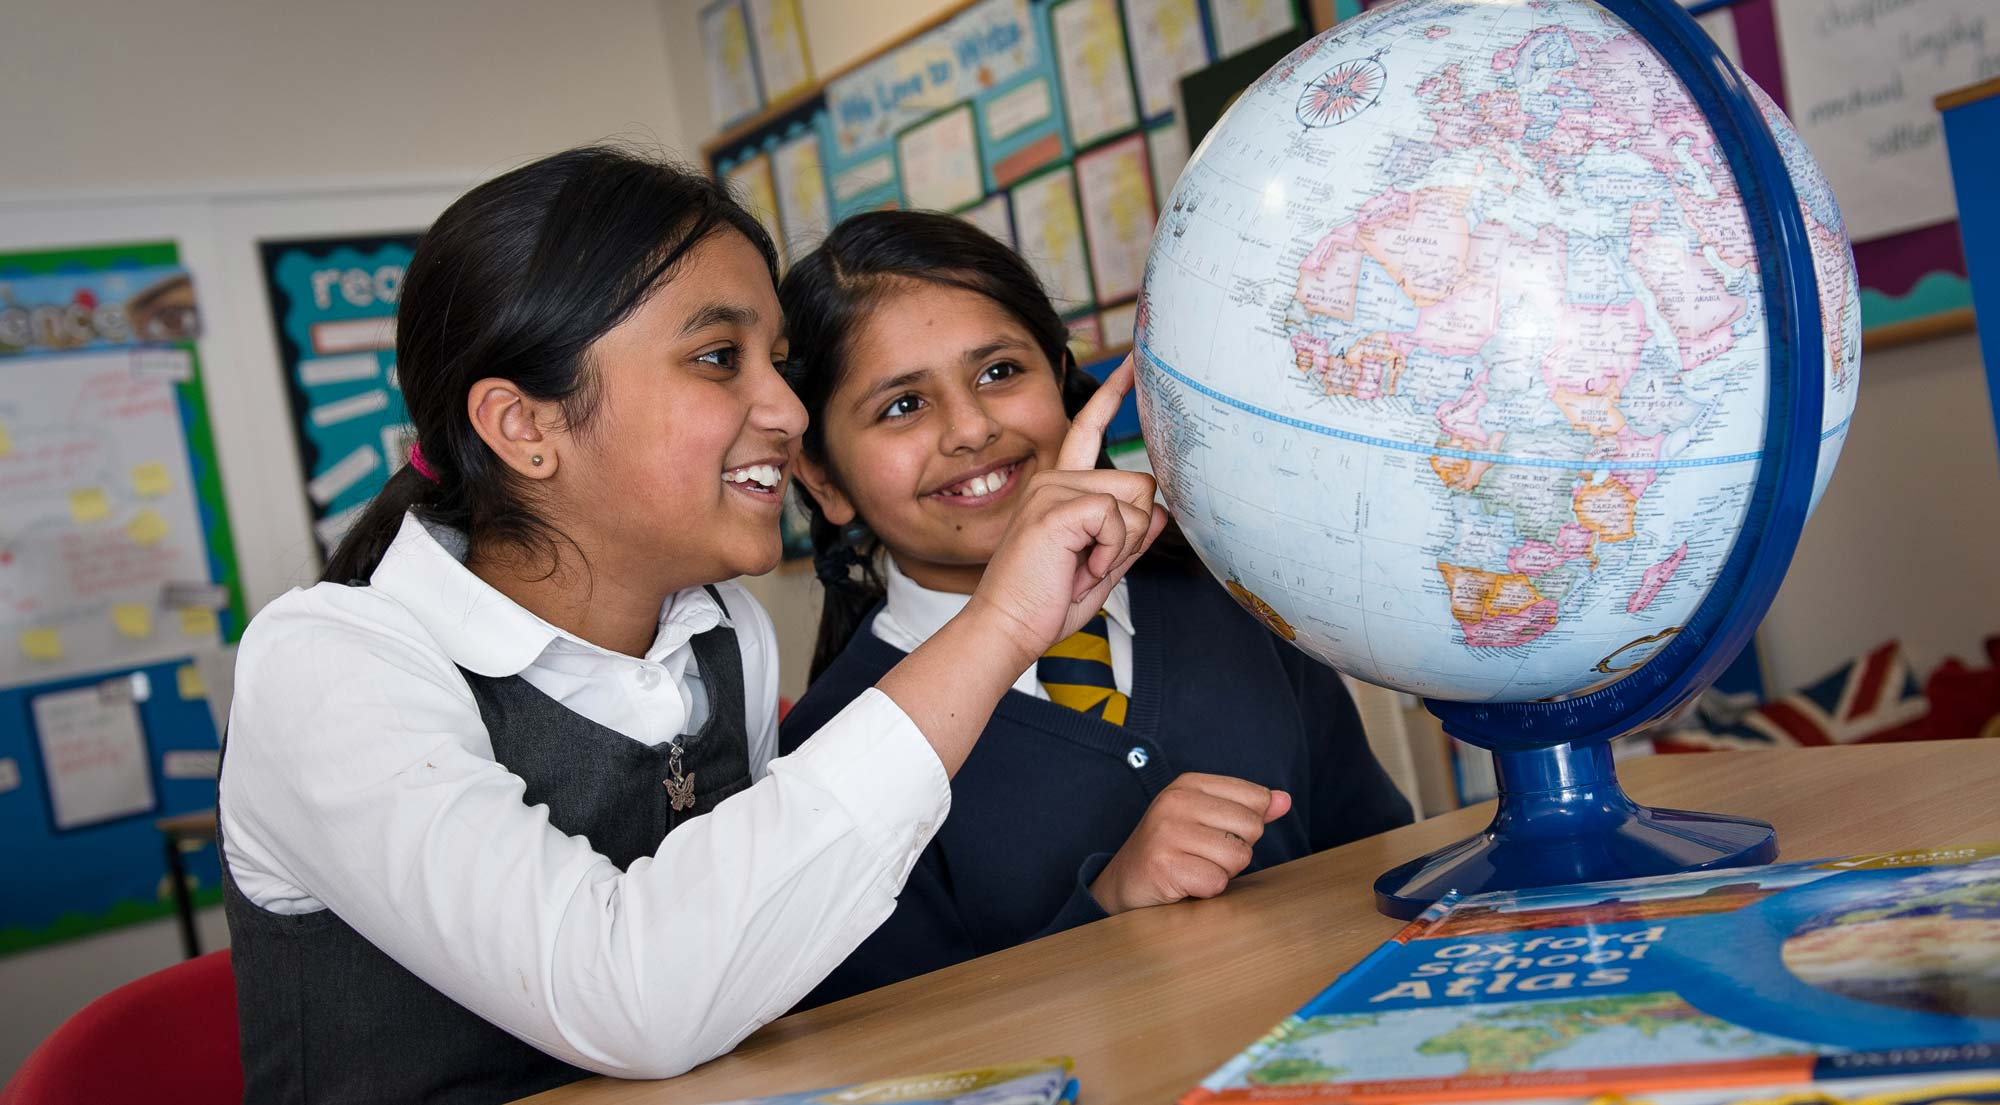 Two smiling girls pointing at globe